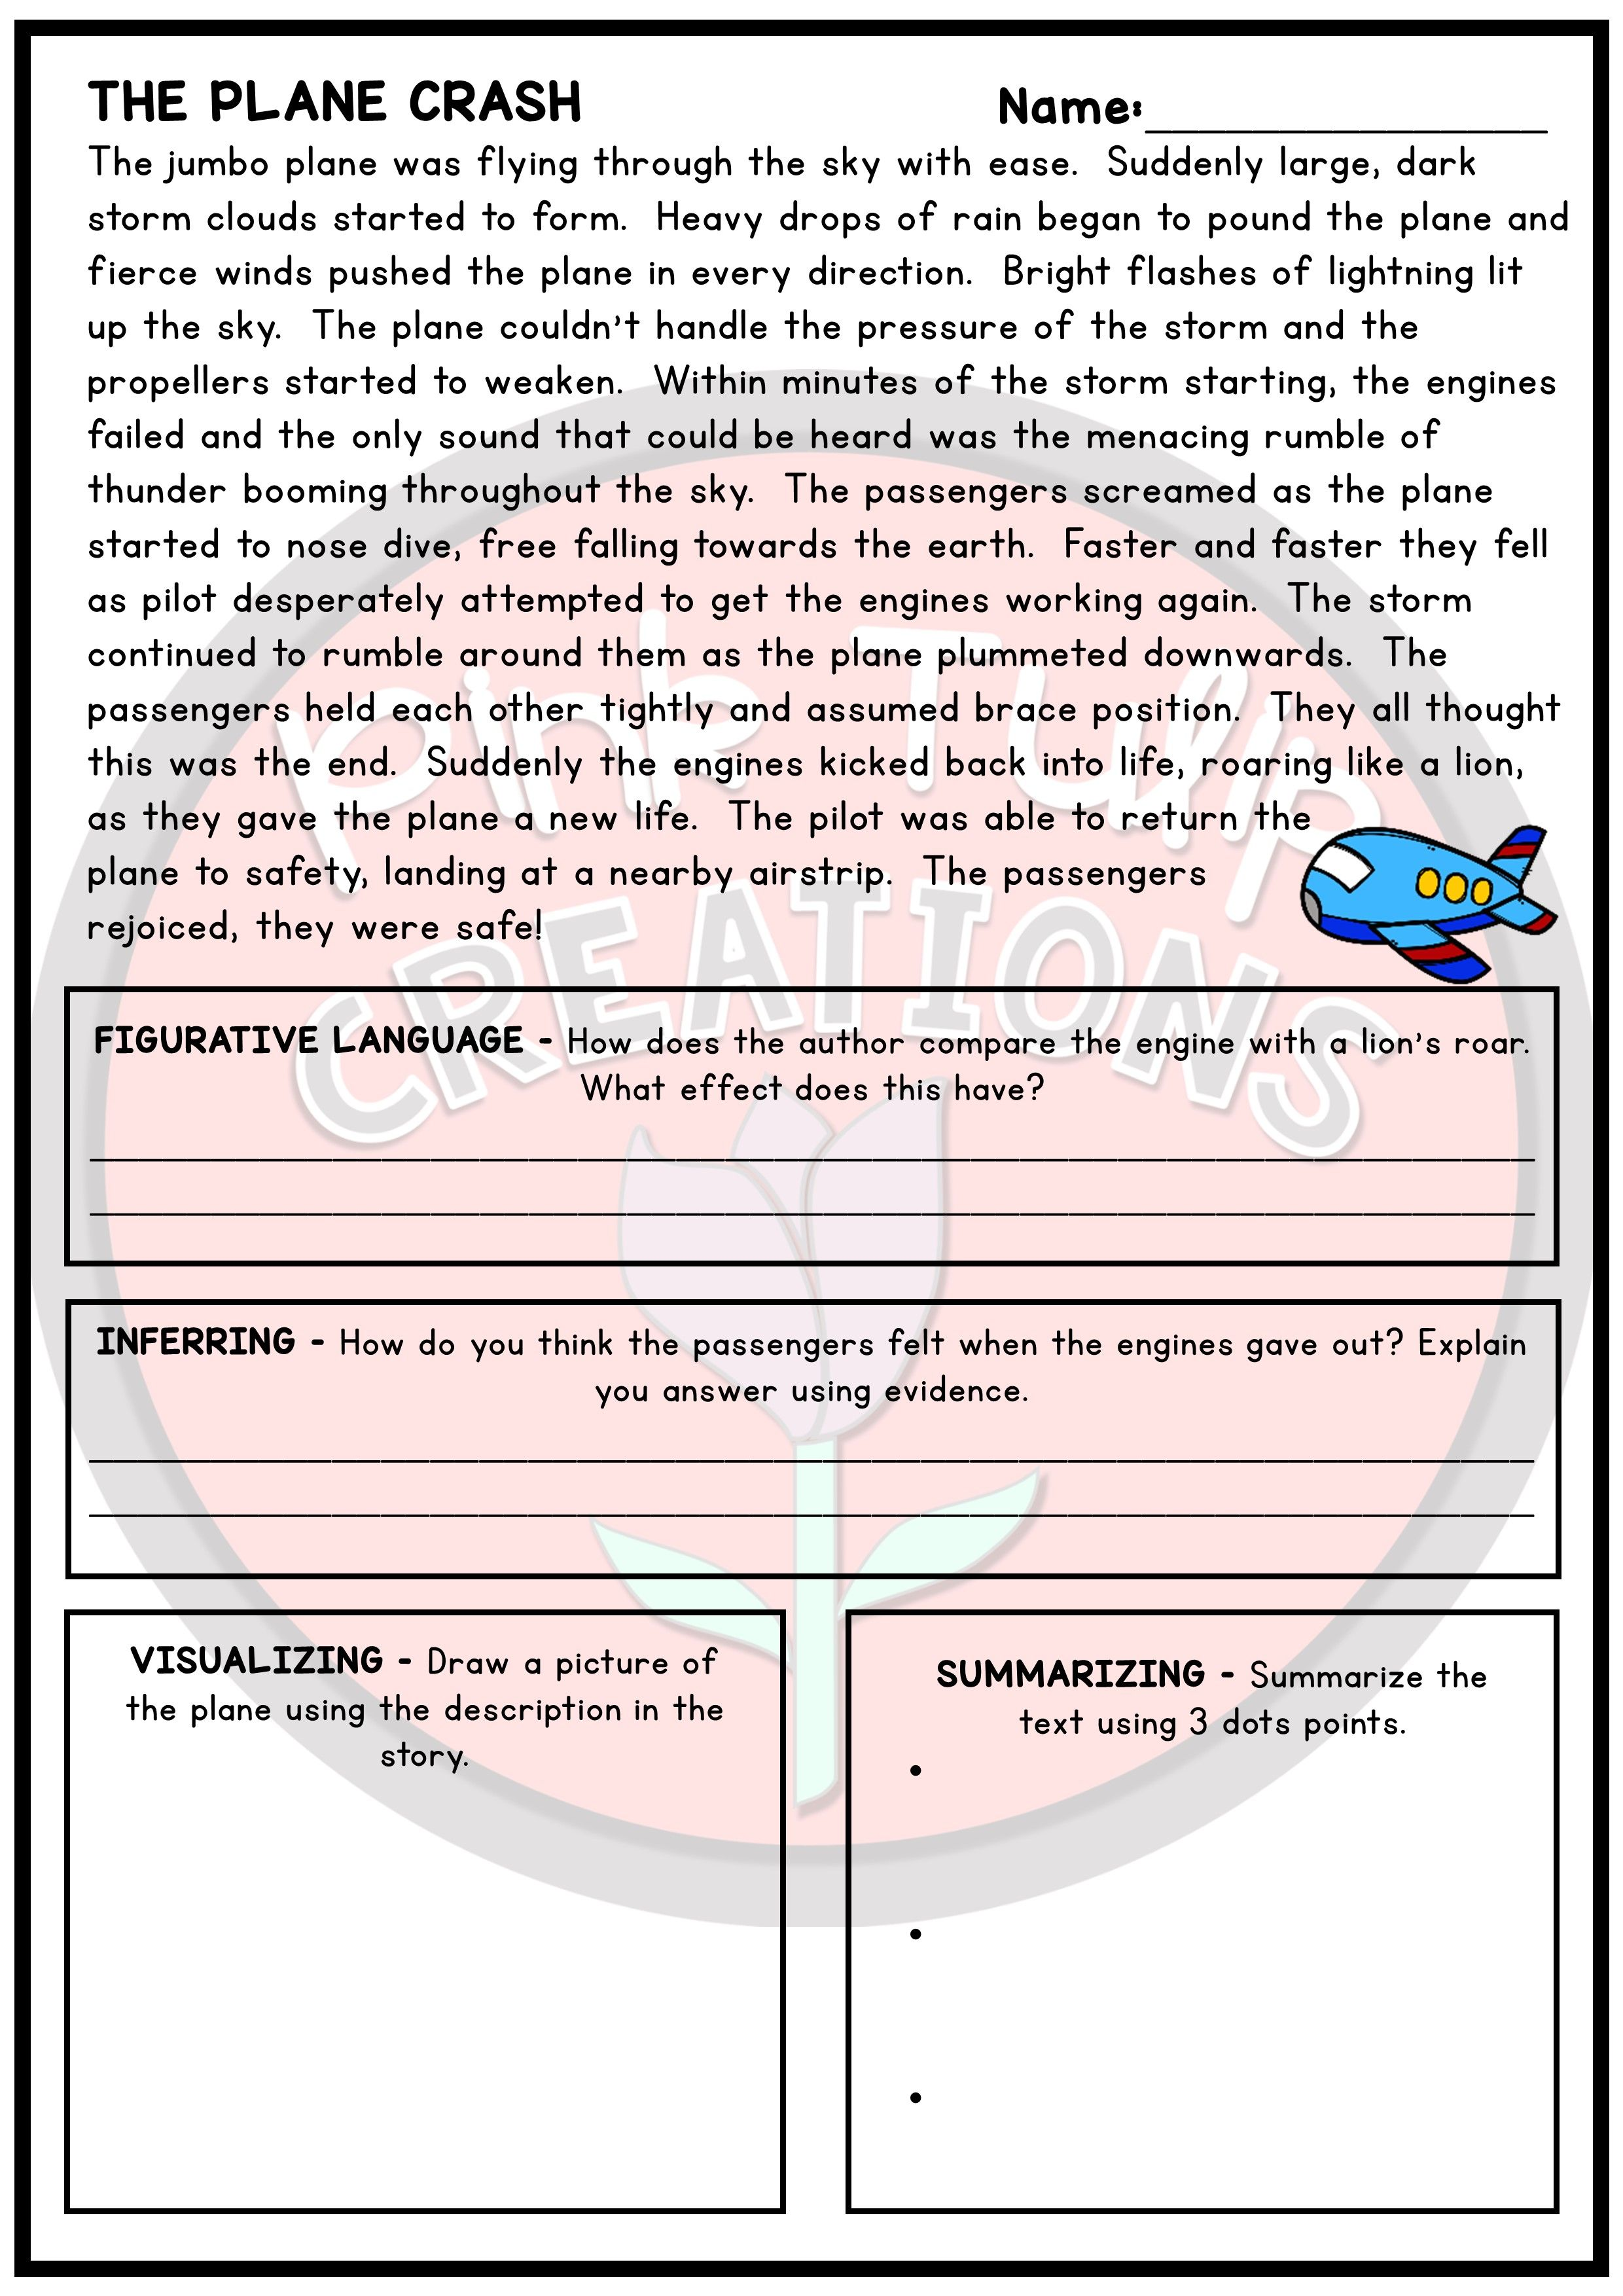 30 Engaging Reading Passages With A Range Of Reading Strategies And Questions To Develop Comprehension Races Writing Strategy Race Writing Writing Strategies [ 3508 x 2480 Pixel ]